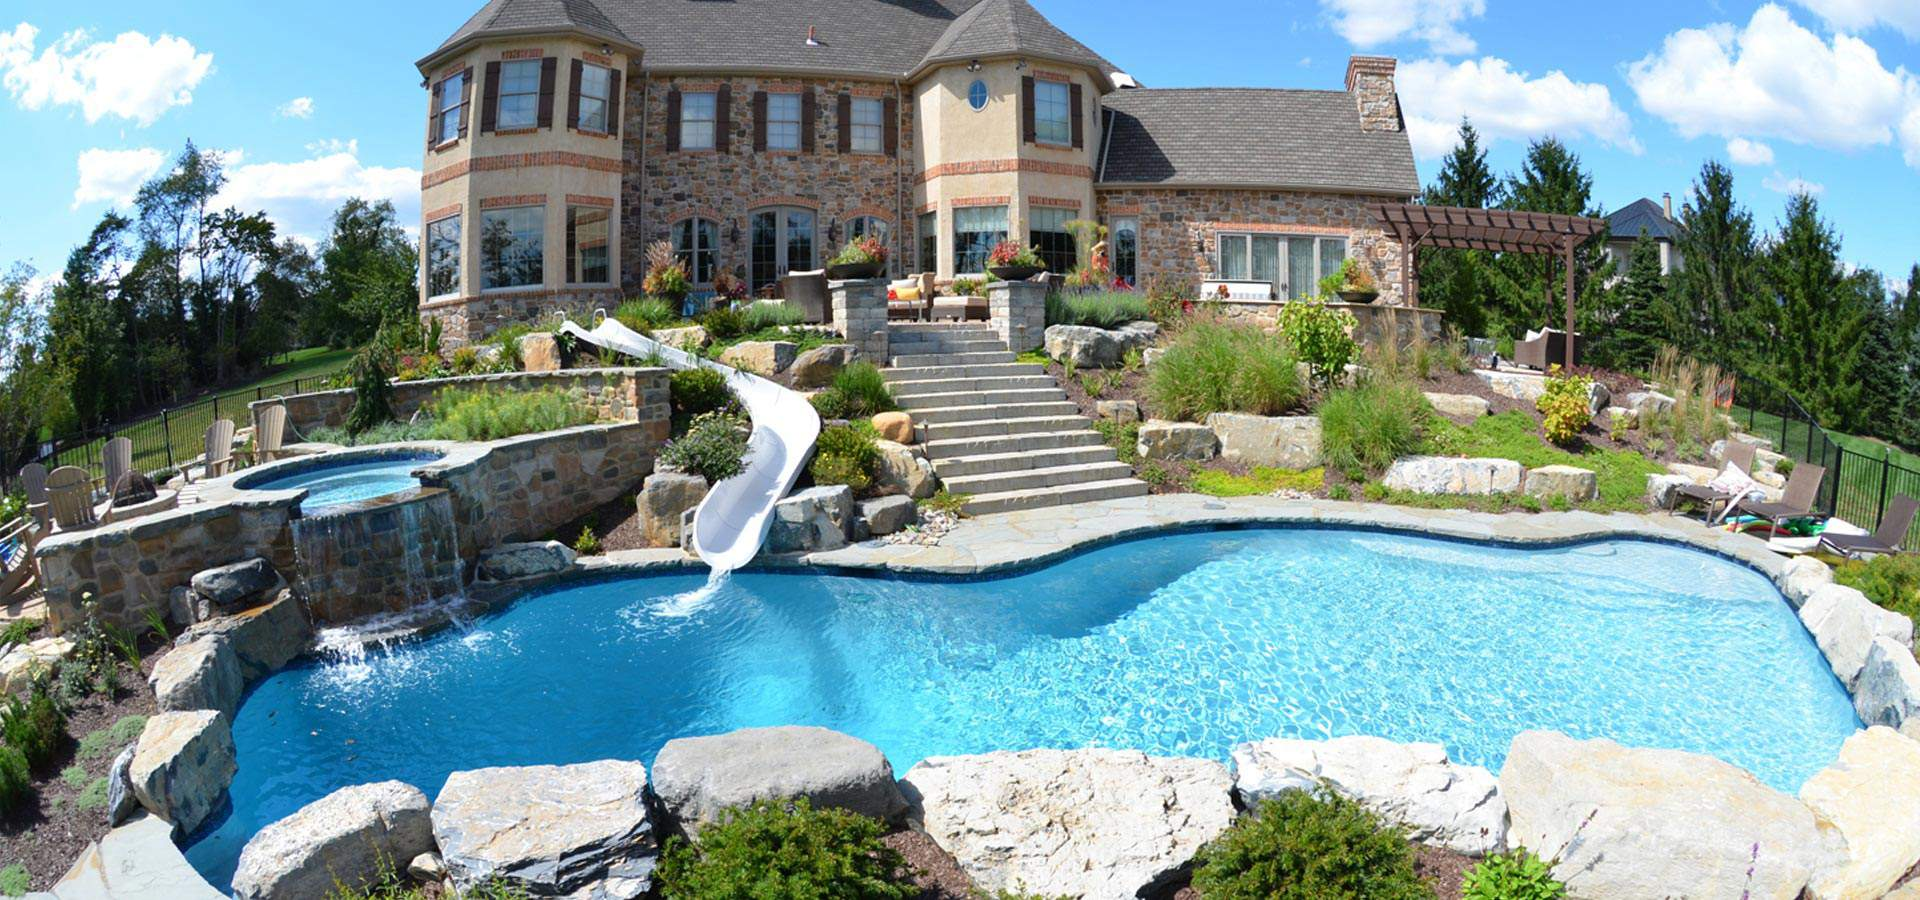 1 pool builder in lehigh valley pa best inground pools - Best pool designs ...